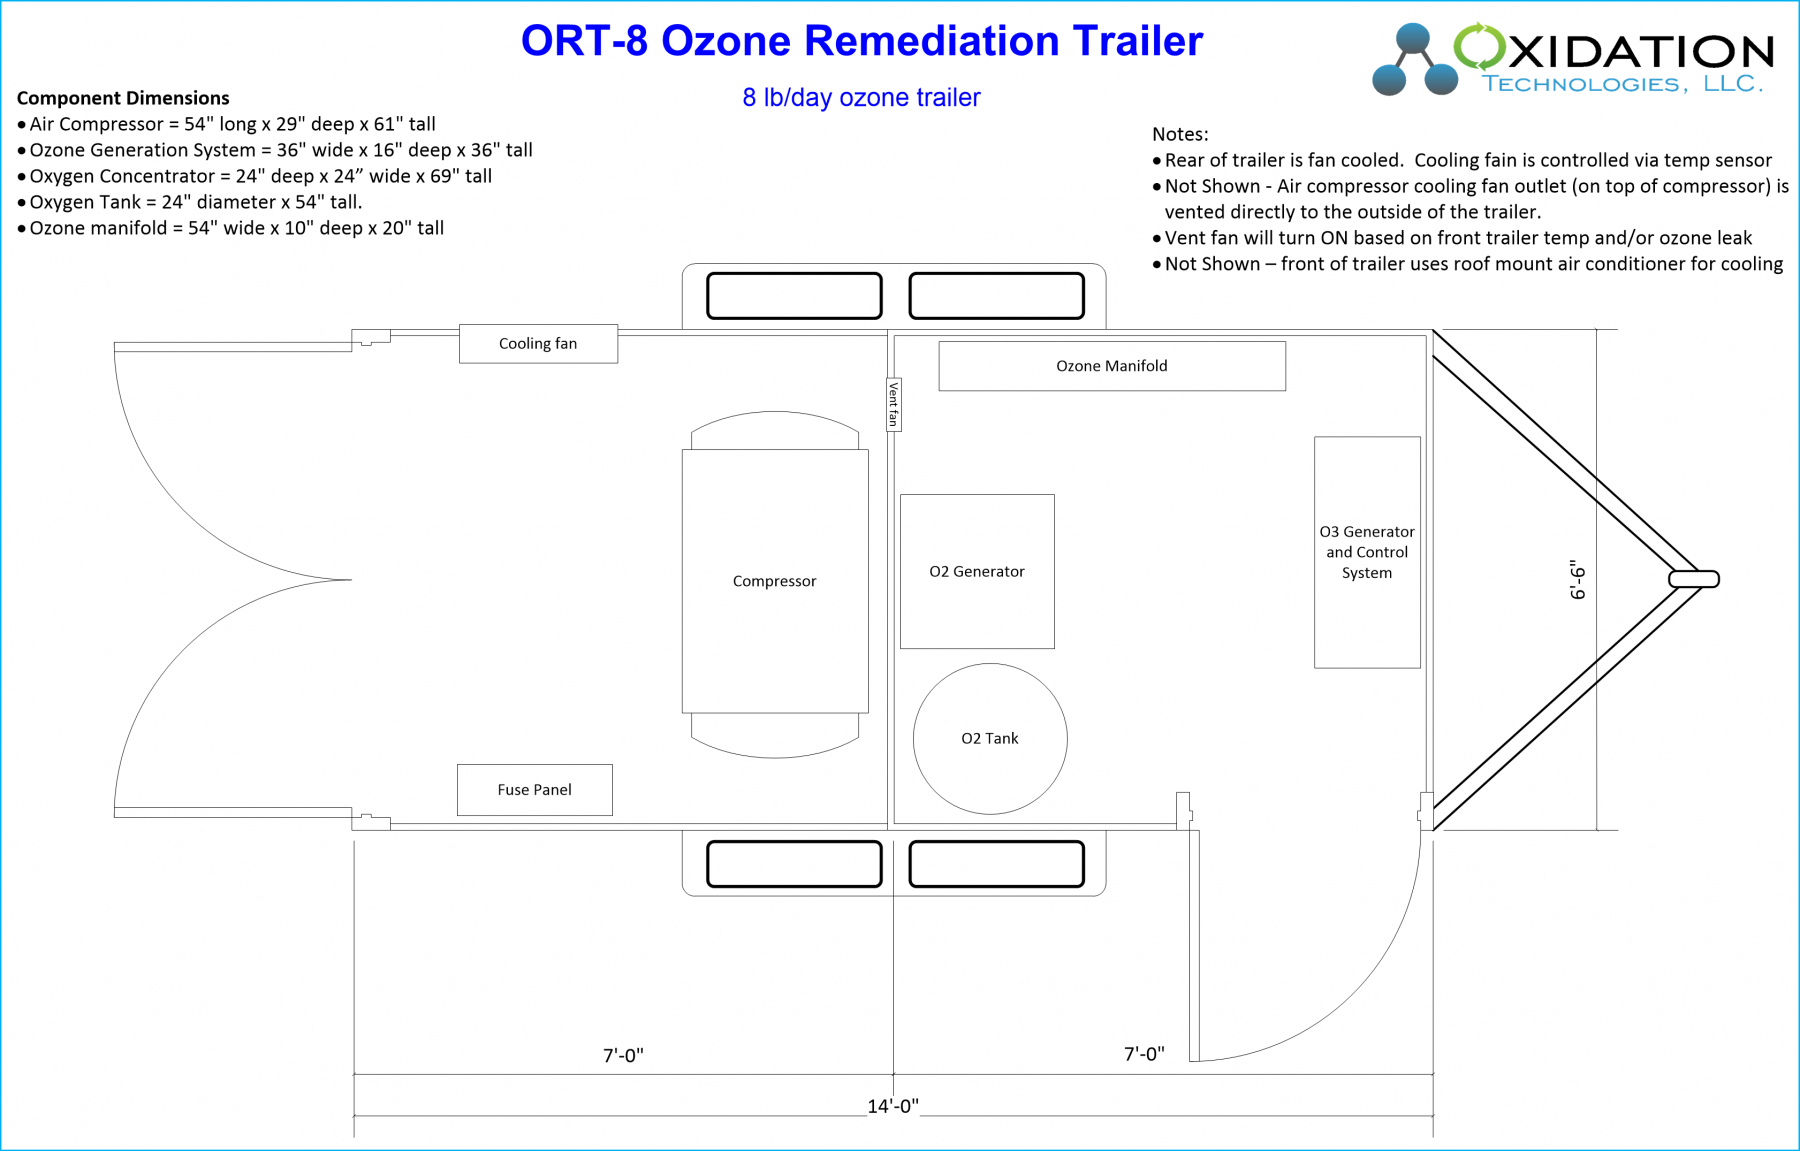 ORT-8 Ozone Remediation Trailer Diagram and layout